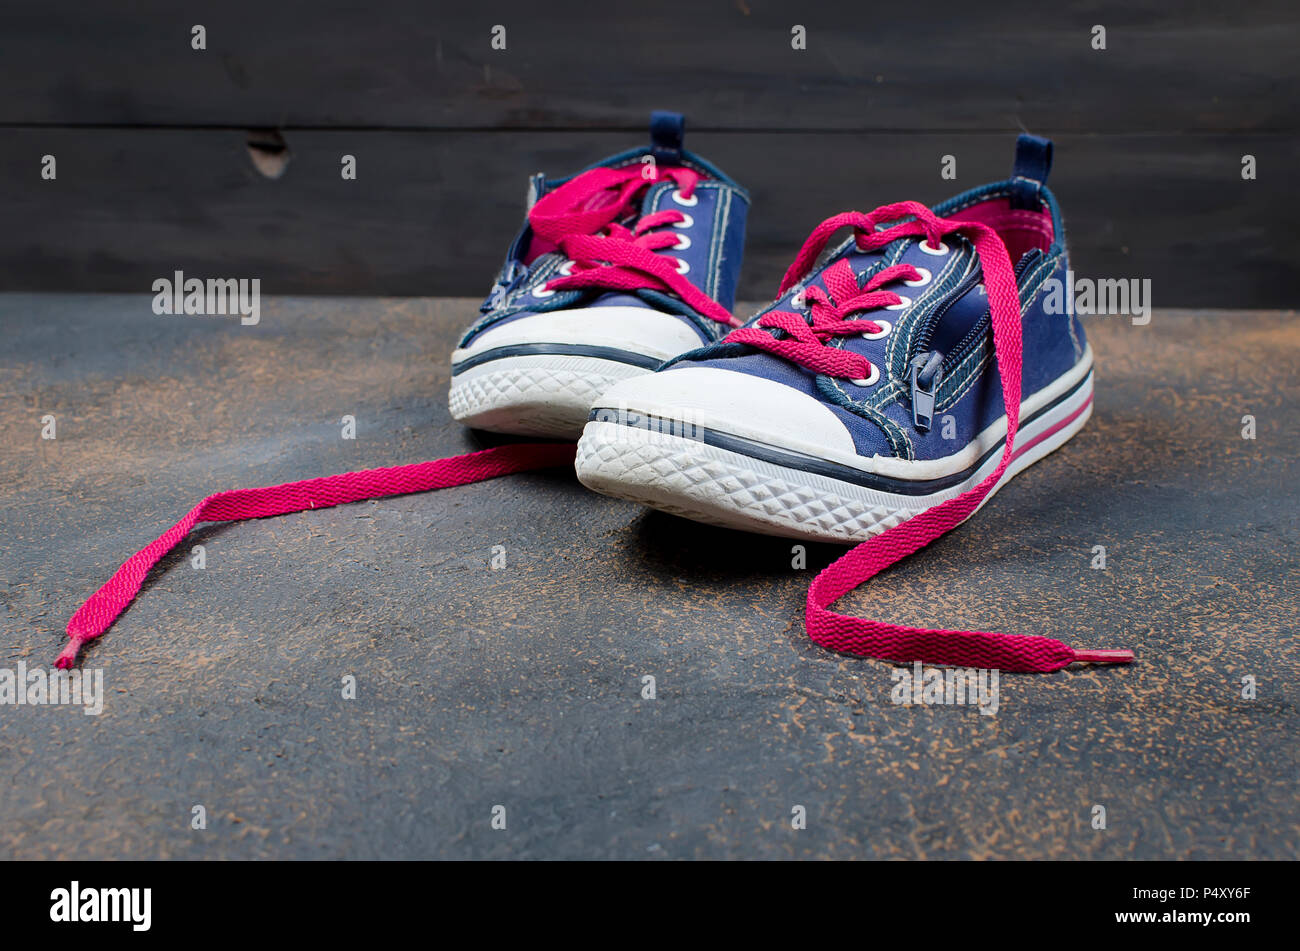 blue shoes with loose pink shoelaces